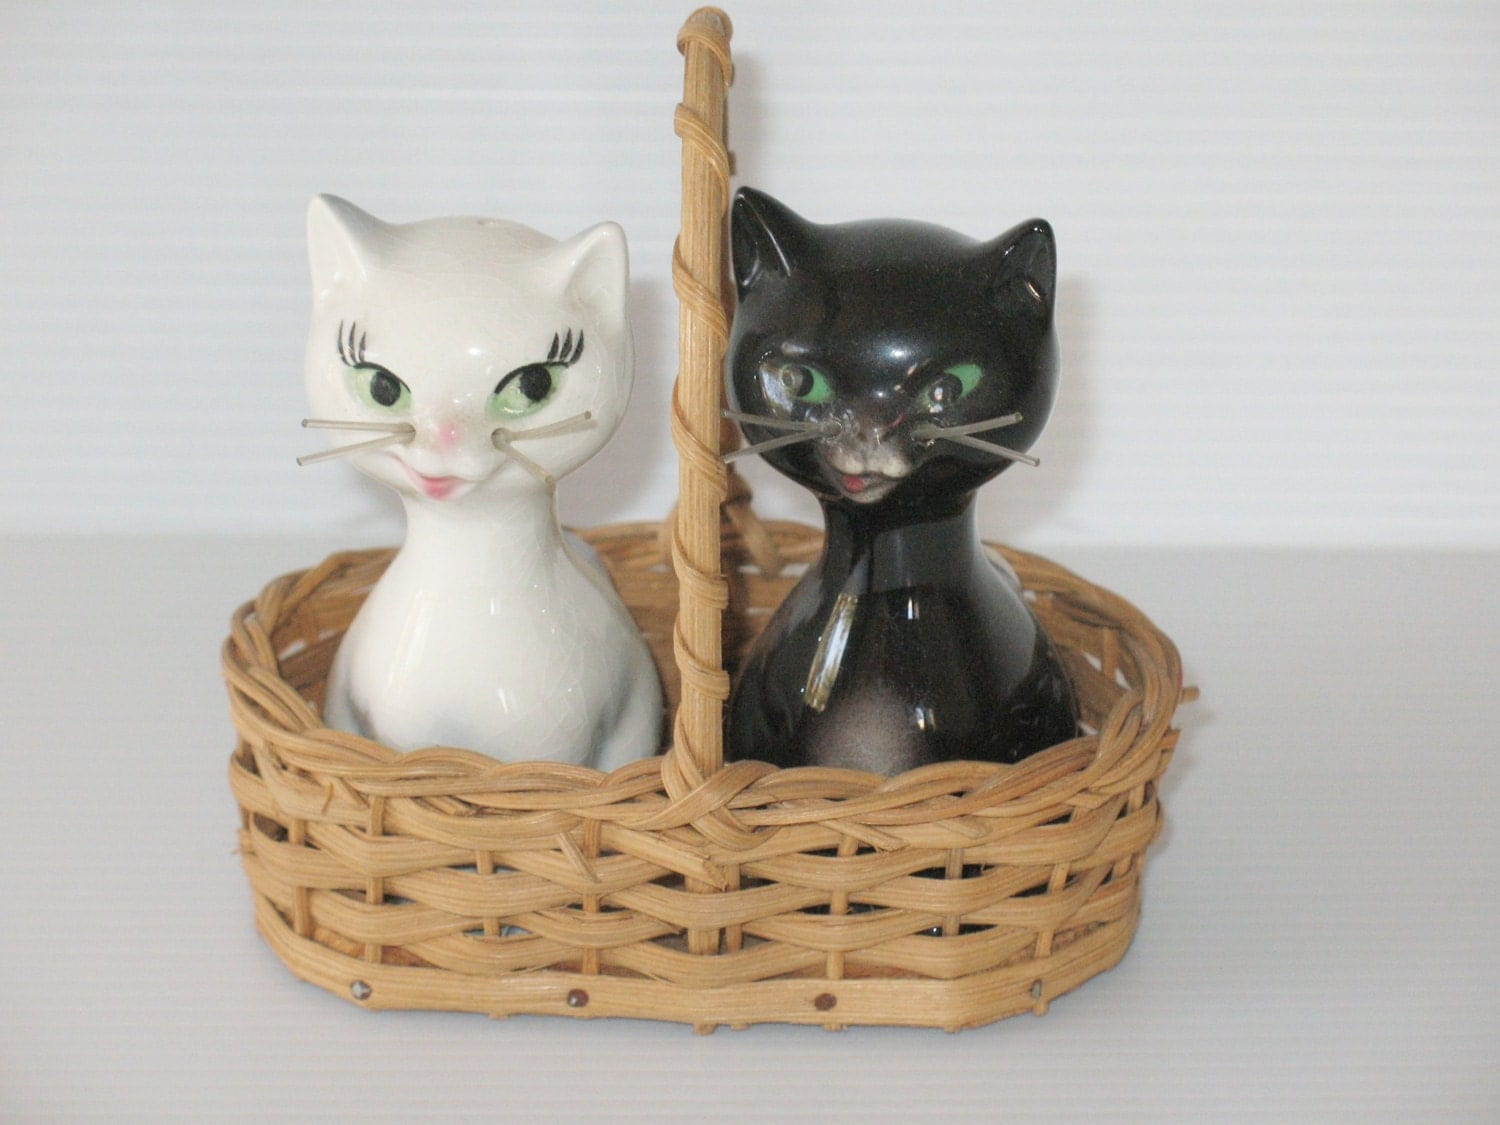 goebel, hummel collector,  black and white salt and pepper shakers cats, w. goebel, w. germany, original basket - LIGONaccessories